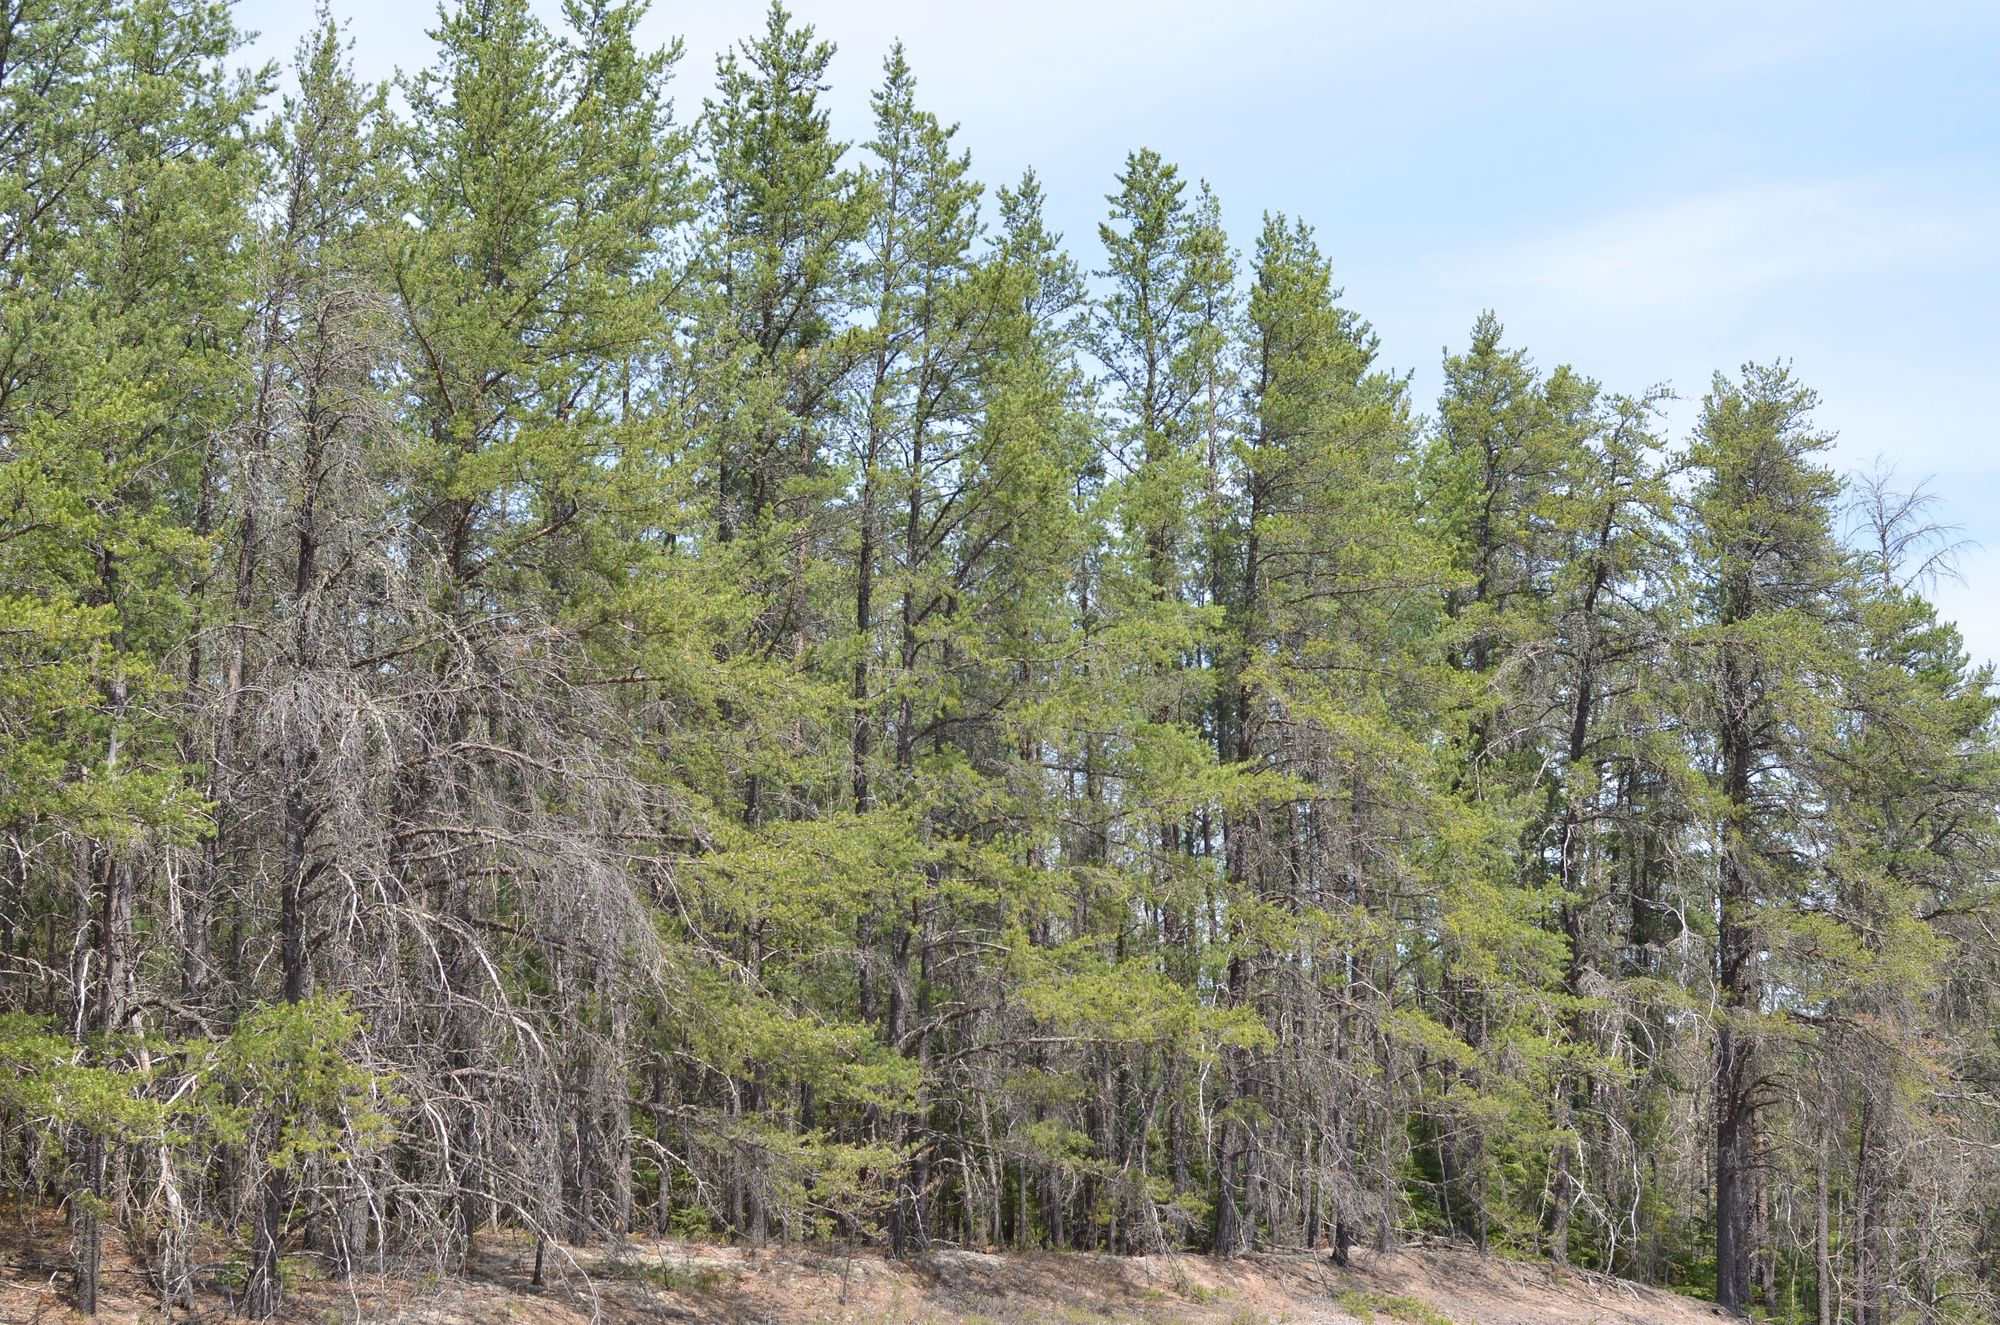 A stand of jack pine grows near a highway in the Upper Peninsula. Jack pines grow in sandy soils.